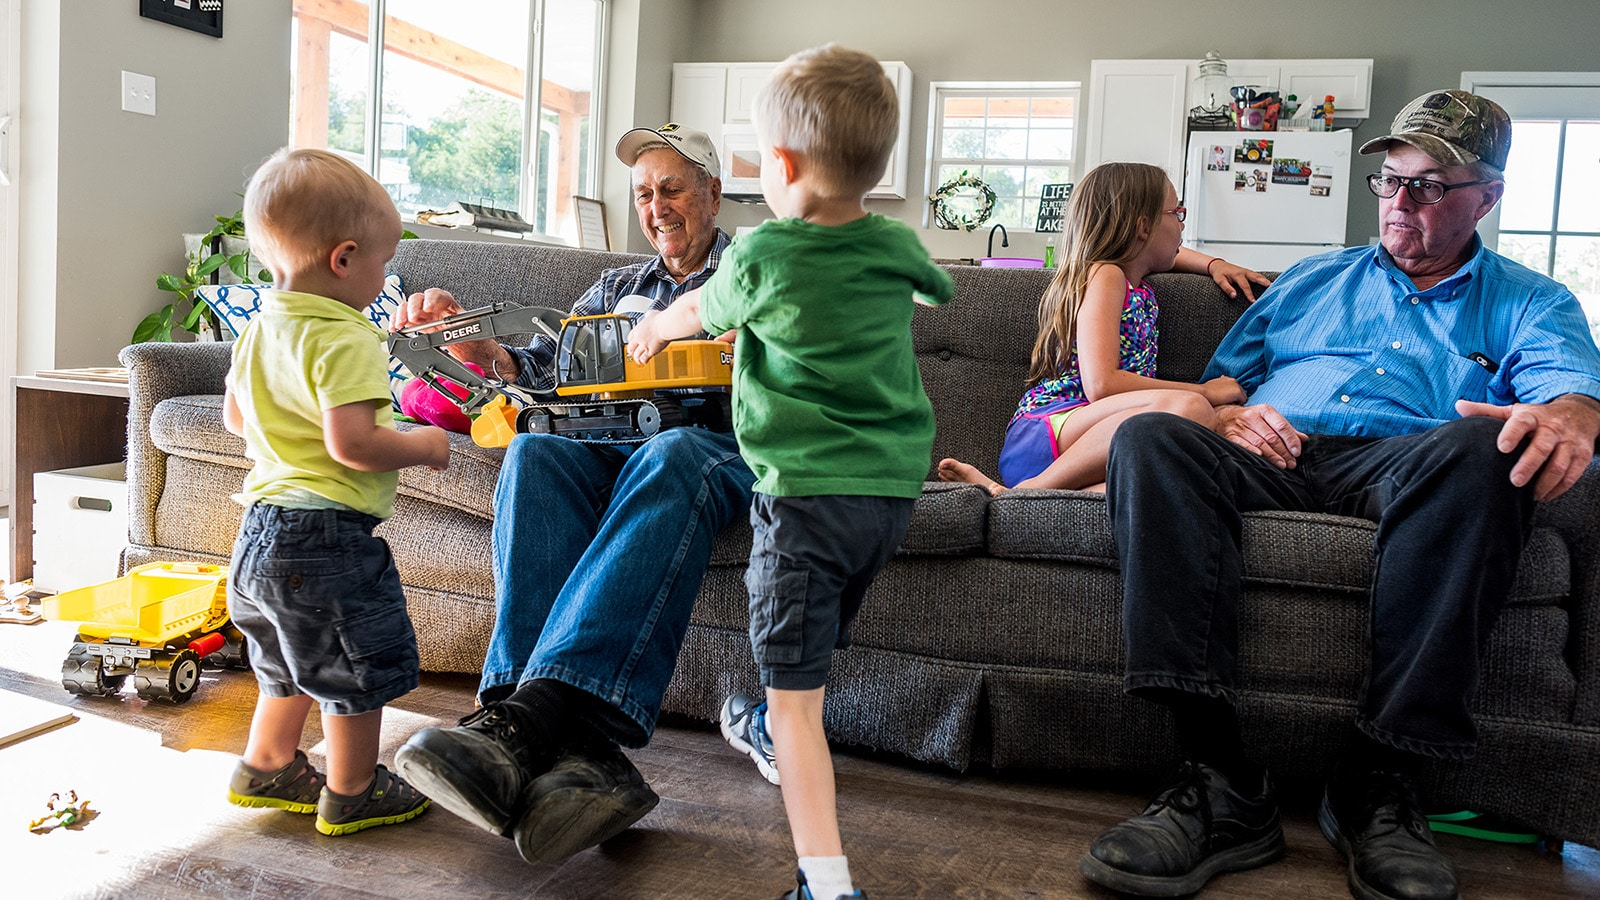 Great grandfather sitting on the couch shows a Deere excavator toy to his great-grandsons.